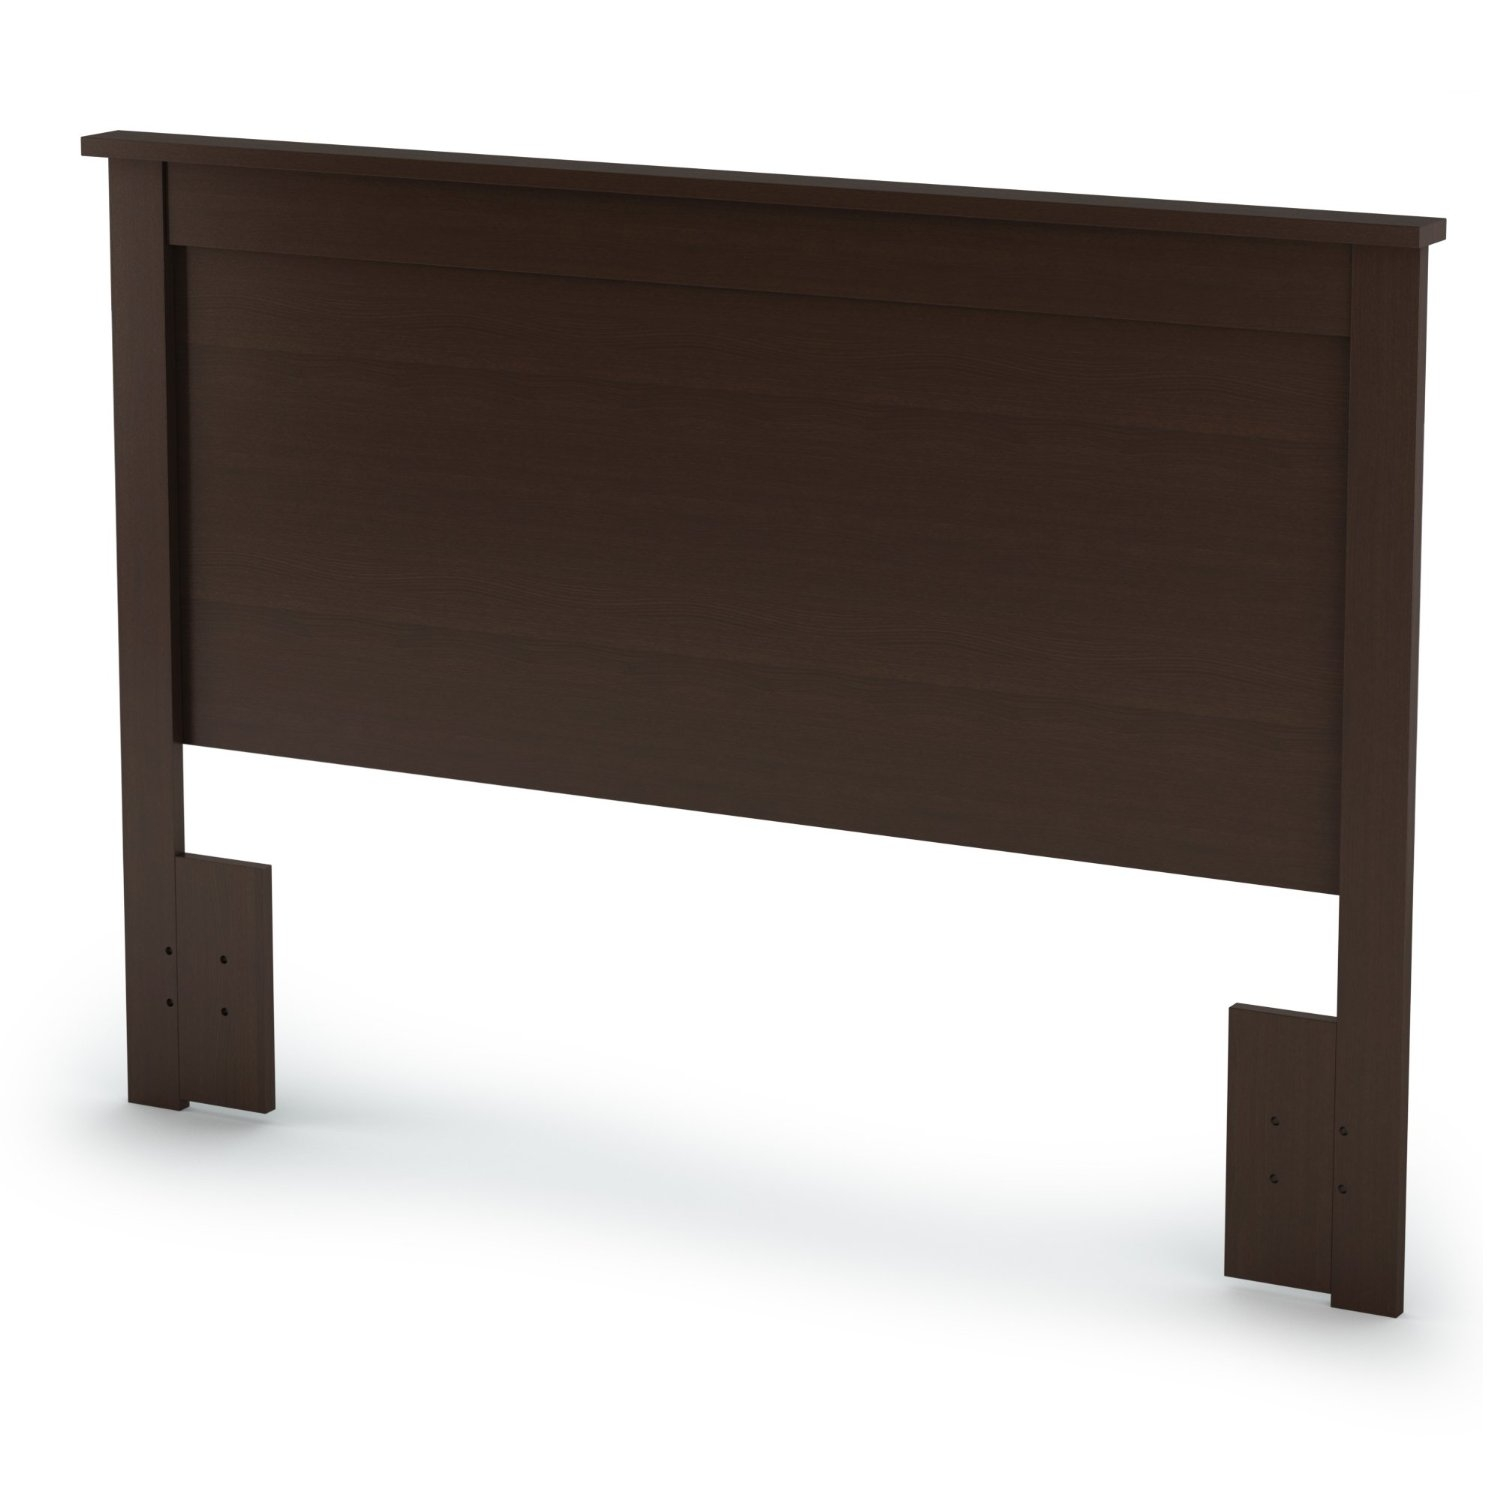 This Full / Queen size Headboard in Chocolate Finish - Eco-Friendly has simple and elegant lines. This headboard is made of recycled CARB compliant particle panels. It has to be assembled by two adults. Measures 65-Inch wide by 3-Inch deep by 46-Inch high. This headboard is delivered in one box measuring 69-Inch by 24-Inch by 4-Inch and weights 41 pounds. Straight transitional lines.